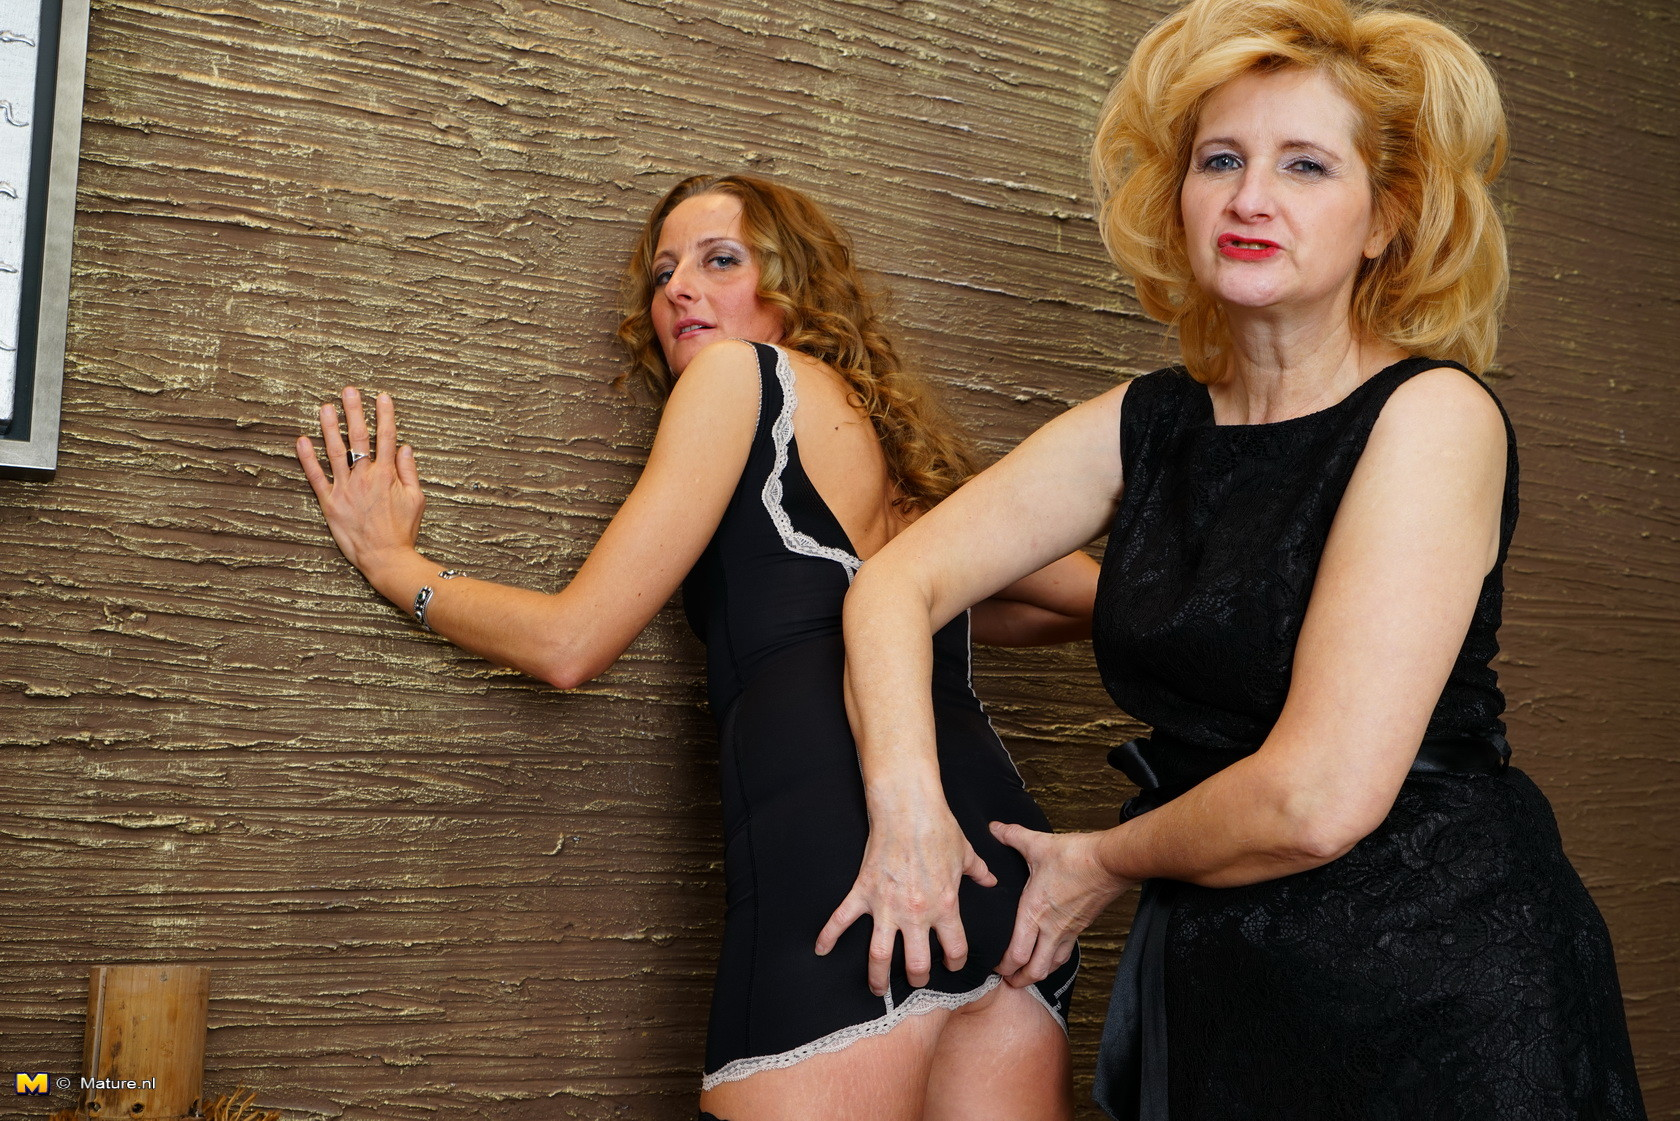 bawdy housewives love to have splendid female-on-female astonishingly